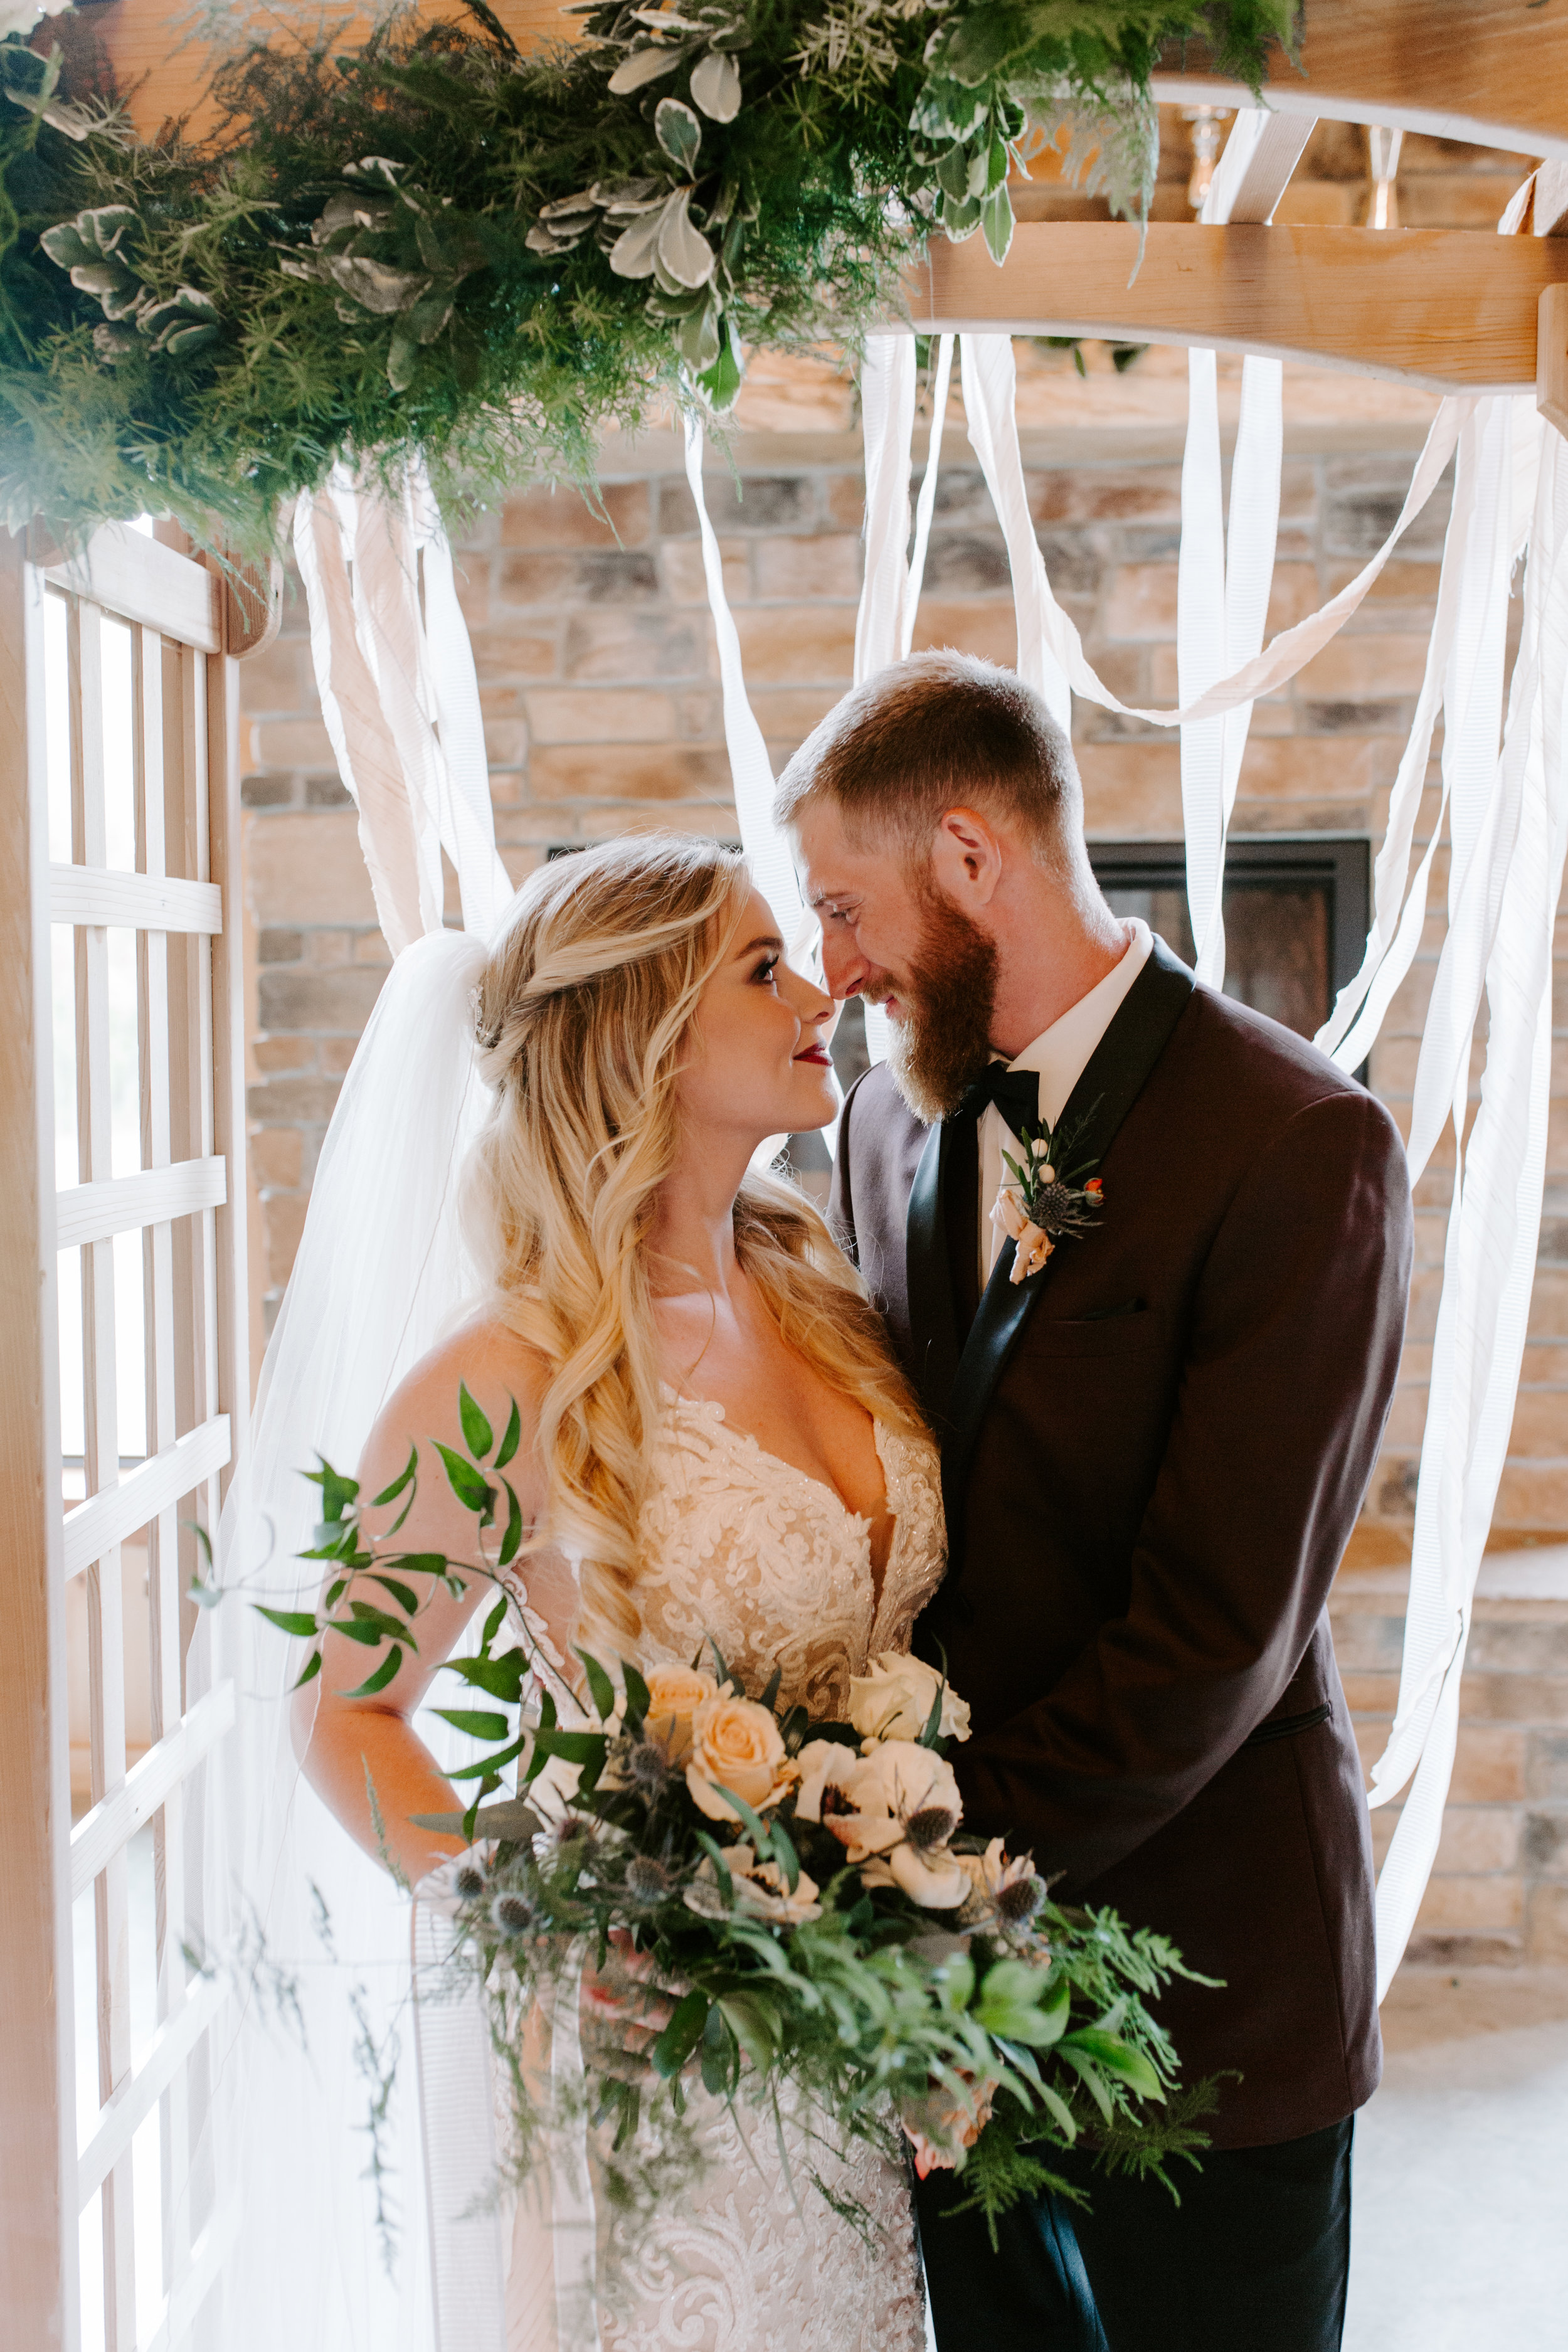 Bride and groom at Country Lane Lodge in Iowa, under arbor at wedding ceremony styled by Lavender Blue, holding blush and cream flower bouquet